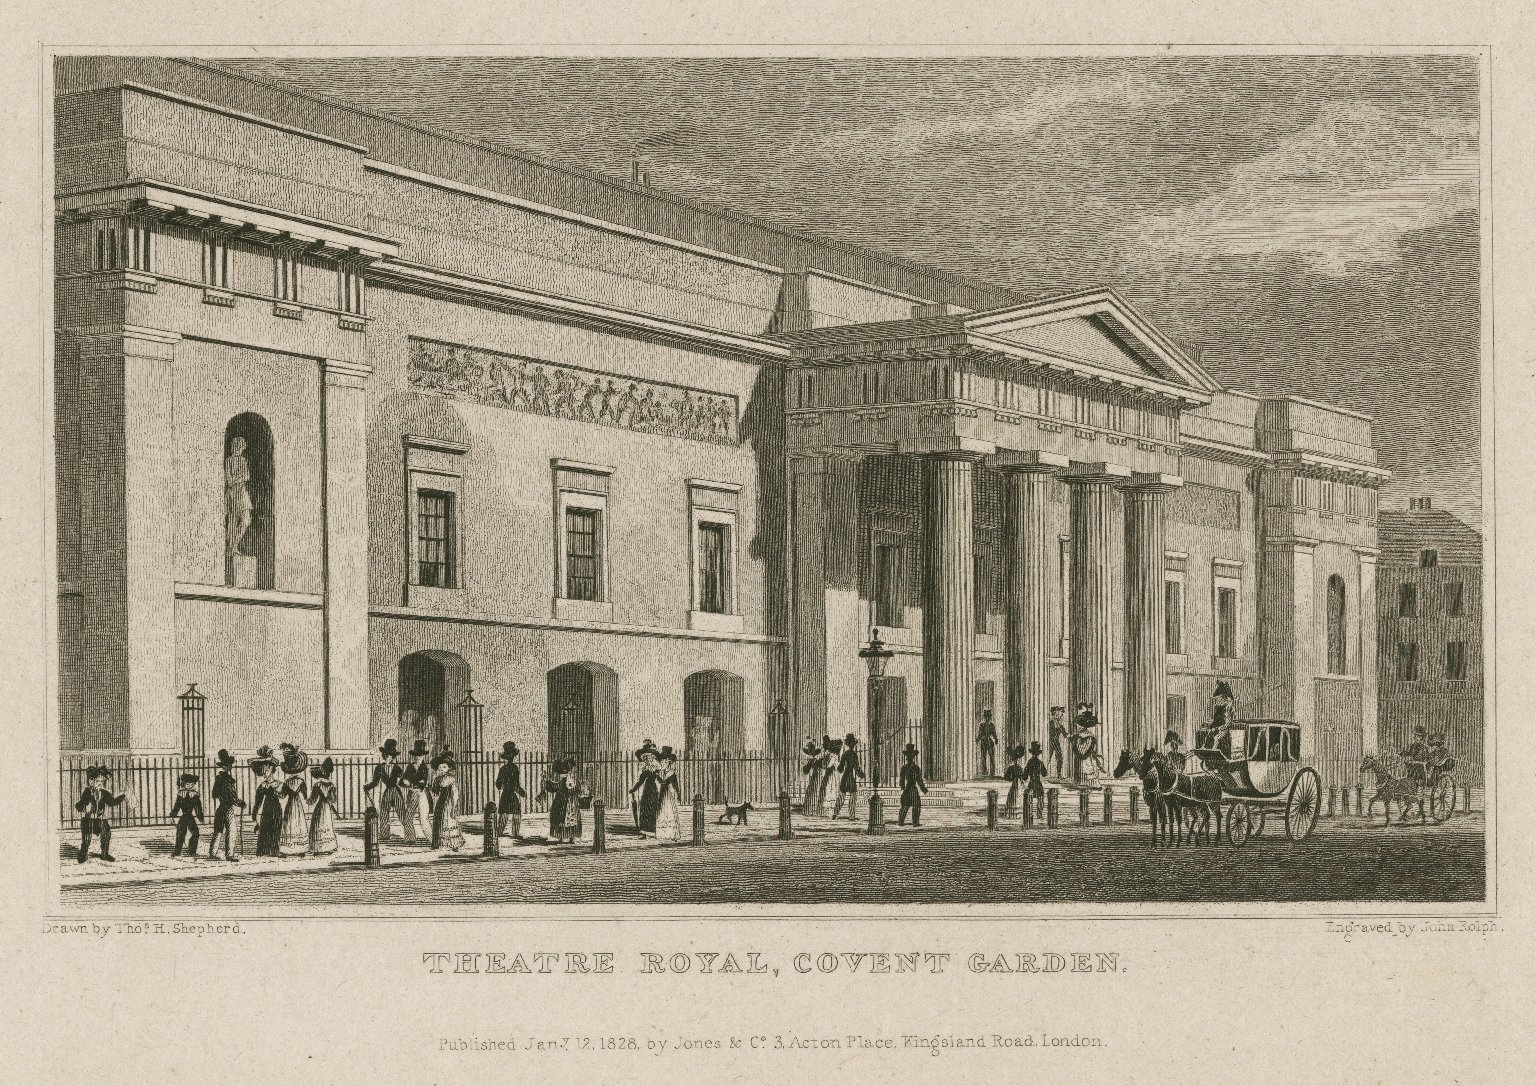 <b>Covent Garden, 1828</b>     	</br>Exterior of the new Covent Garden after it reopened in September 1809, London, January 1828</br><br/><b>Source: </b><i>Thomas H. Shepard, Theatre Royal, Covent Garden (Call number: ART File L847t1 C1 no.1), January 12, 1828, Folger Digital Image Collection, University of Cincinnati Libraries Digital Collections, University of Cincinnati, http://digproj.libraries.uc.edu:8180/luna/servlet/s/2q2chh</i>